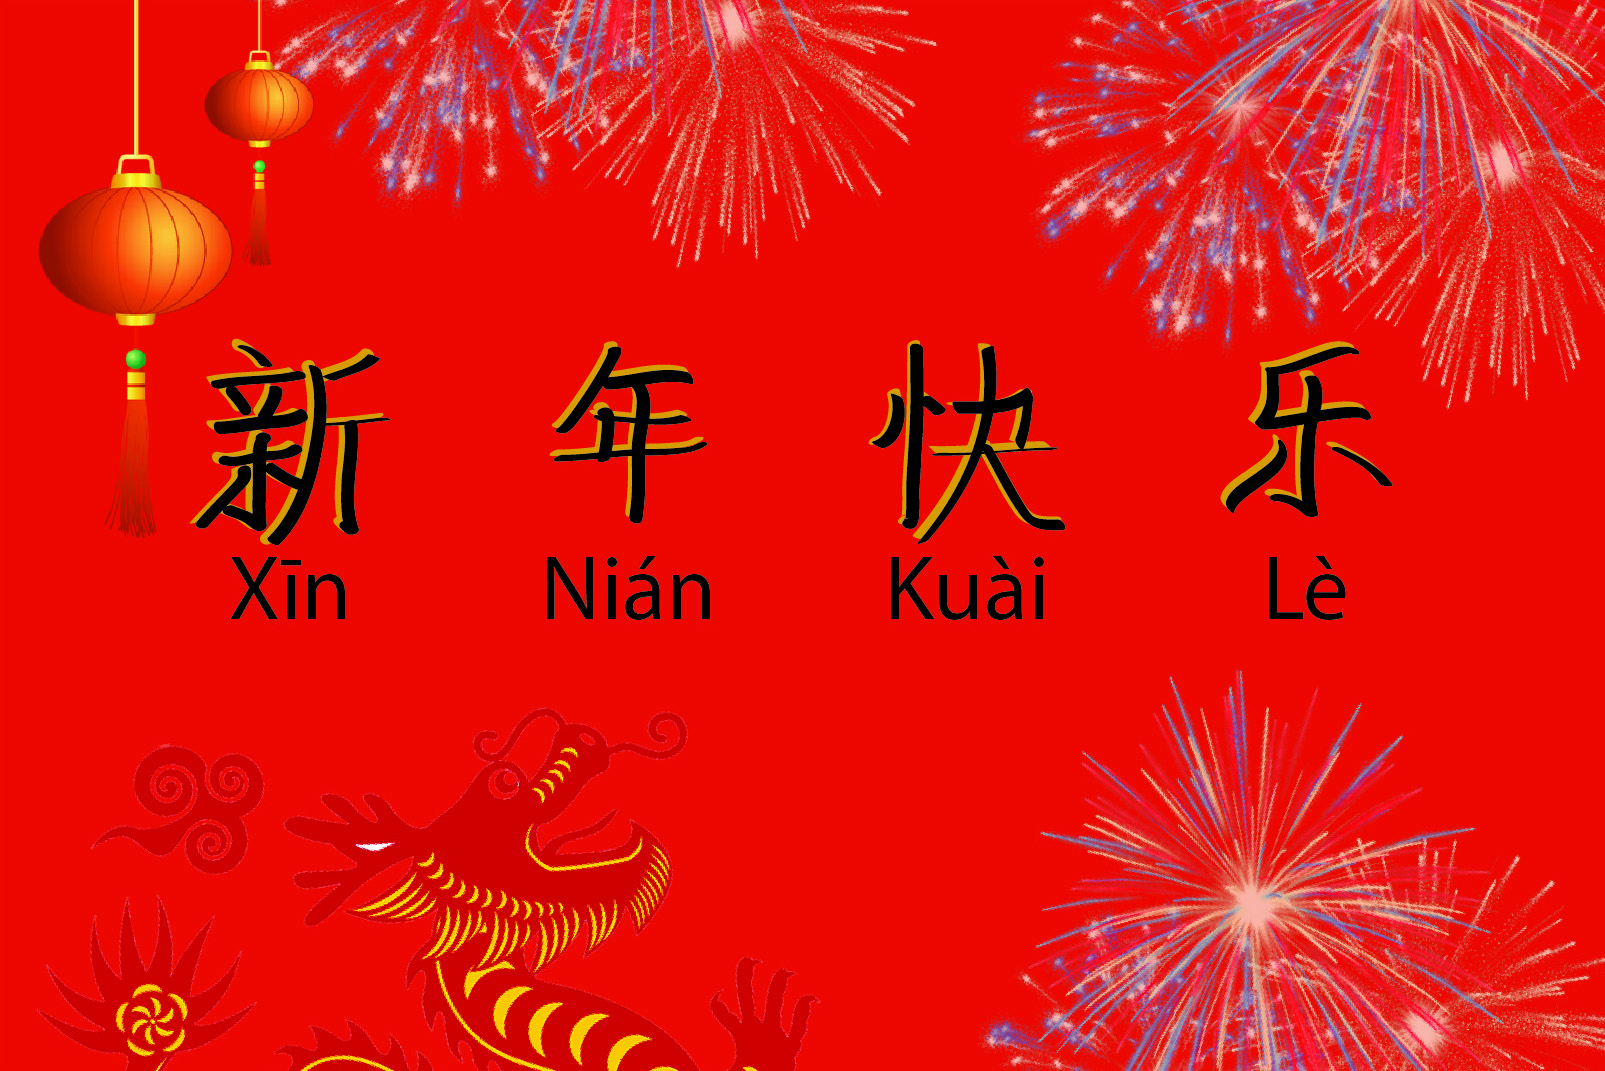 How to write Happy Chinese New Year